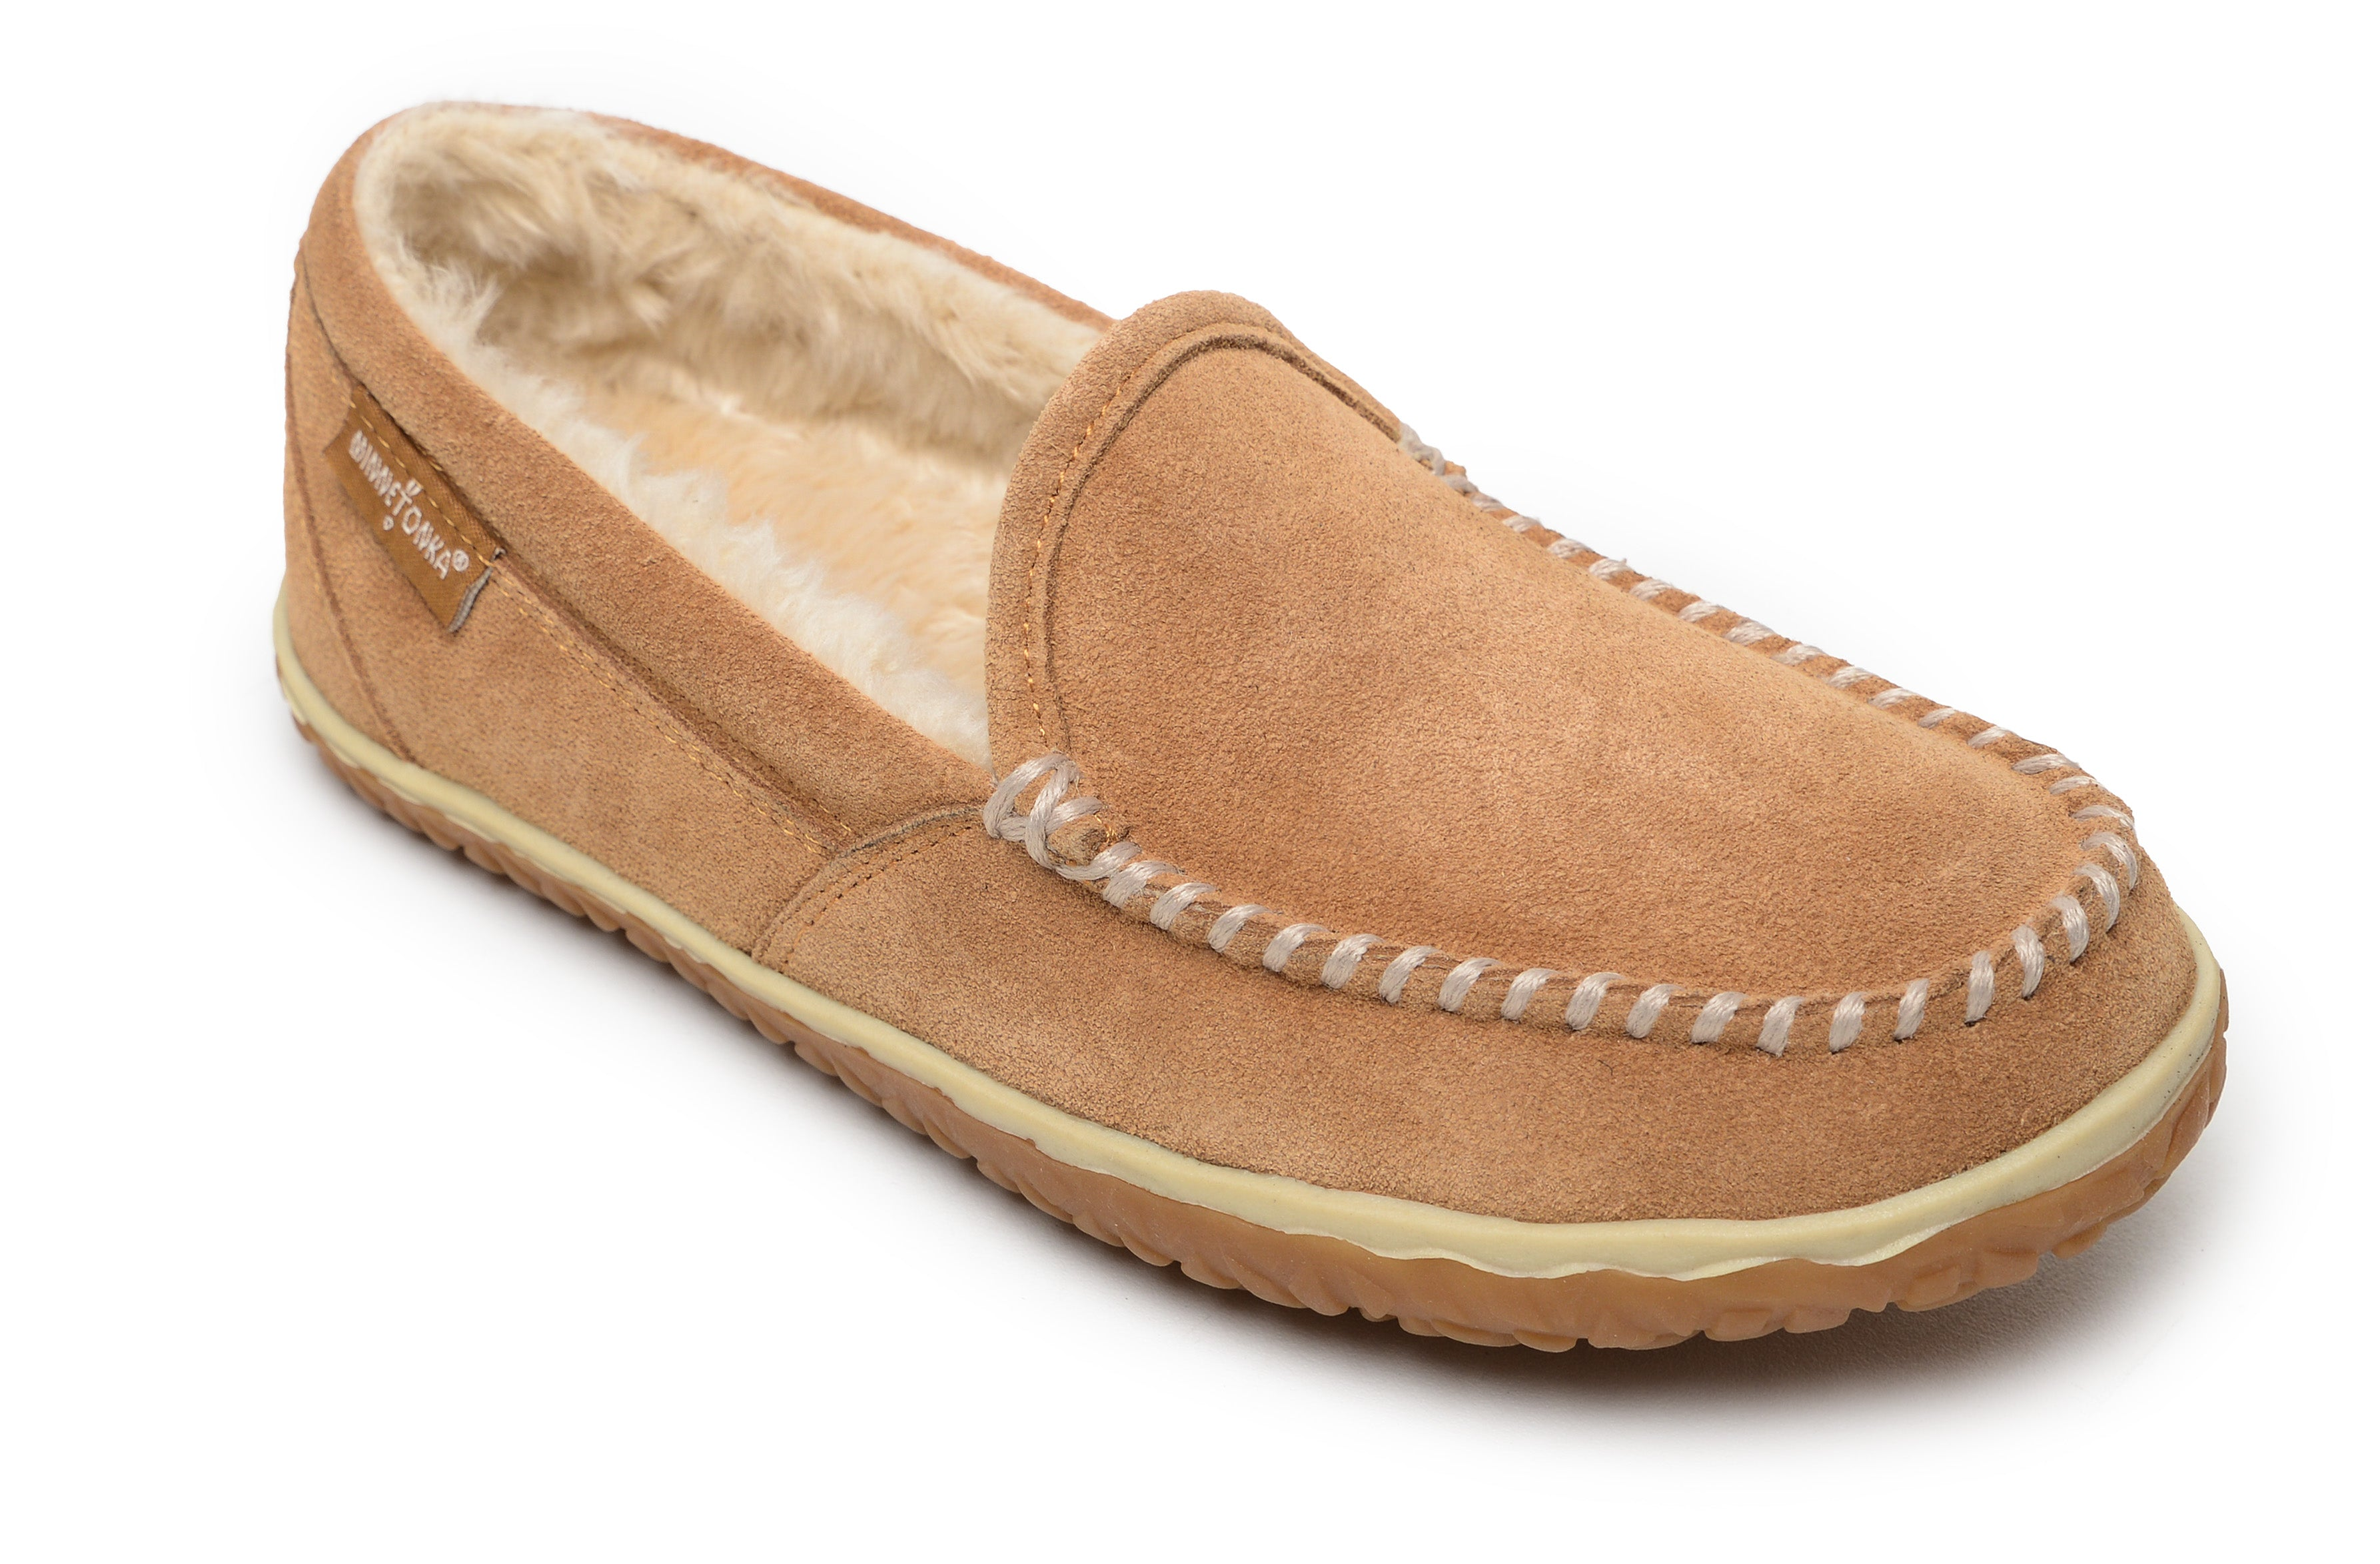 'Minnetonka' 40121 - Women's Tempe Slipper - Cinnamon